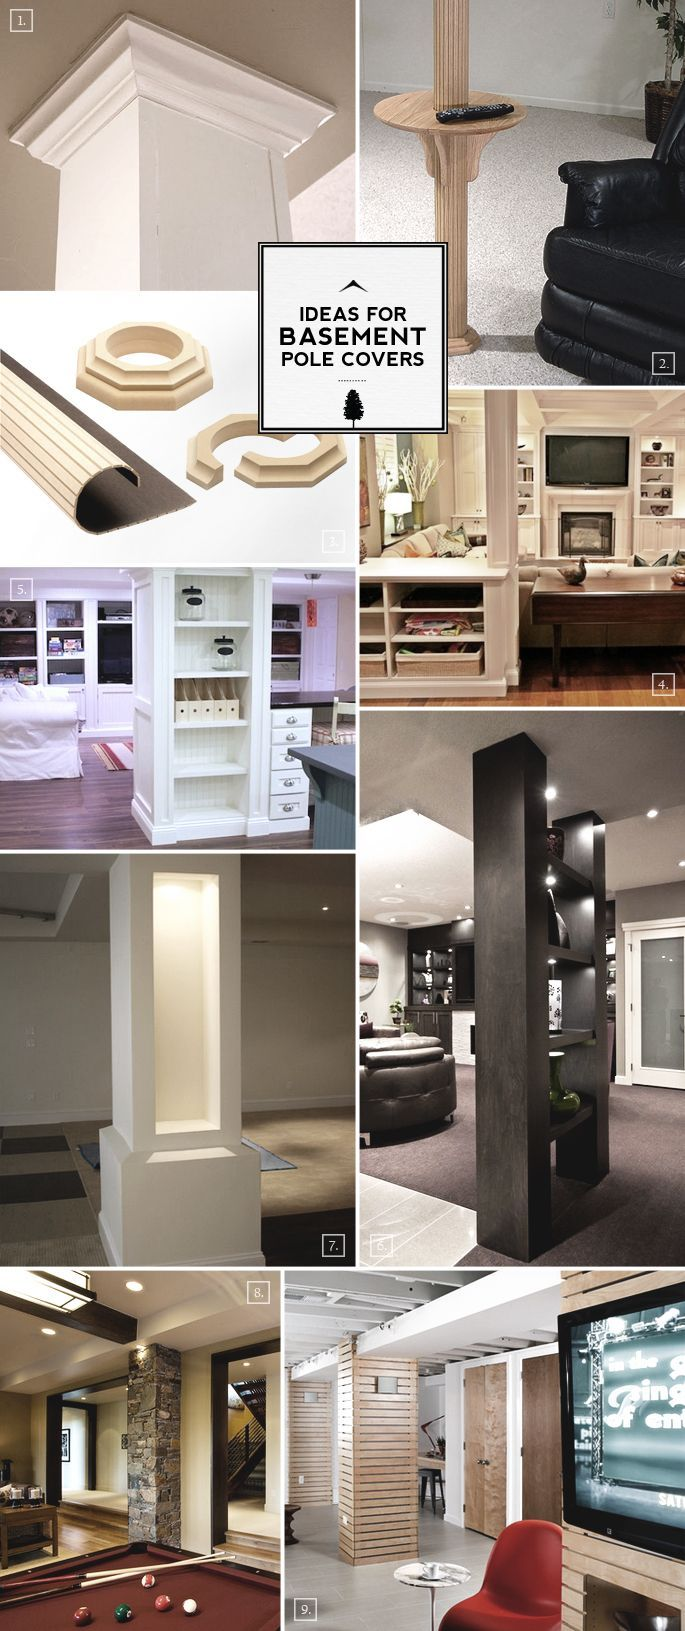 Design Ideas for Basement Pole Covers: From Functional to Decorative. Shut up - it never occurred to me to take that annoying pole in the basement and turn it into a shelving unit/room divider. Nice!